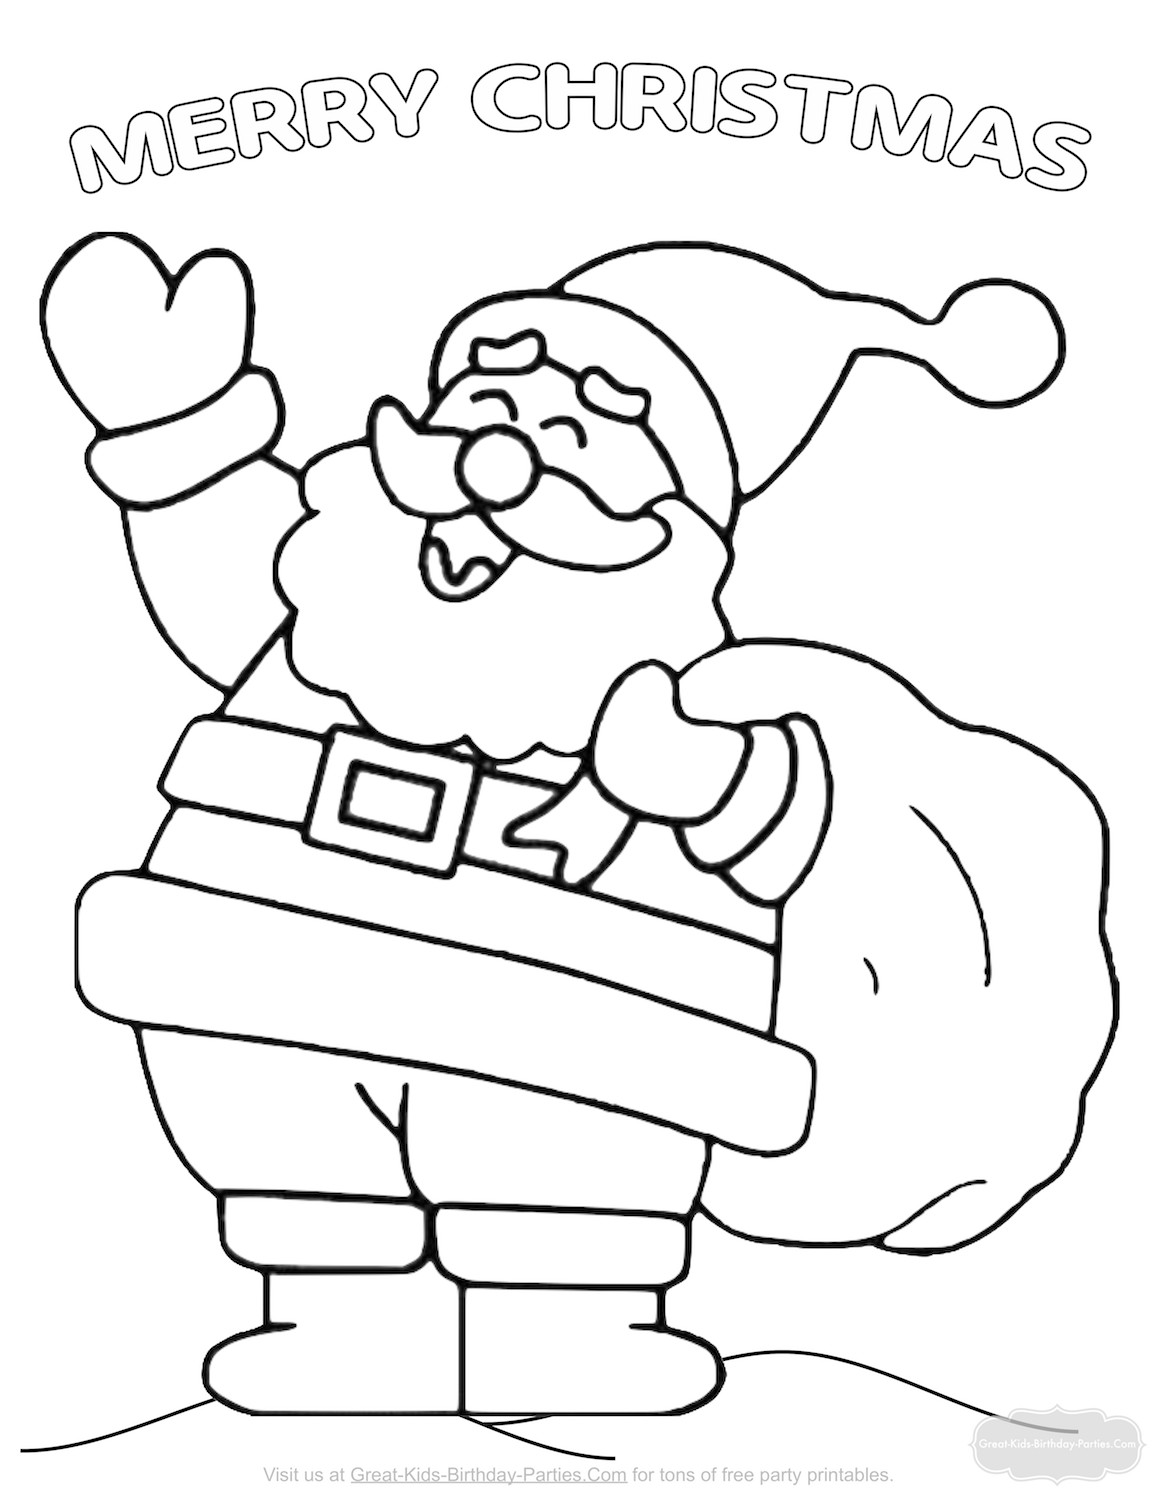 Christmas Coloring Pages Santa coloring pages, Christmas